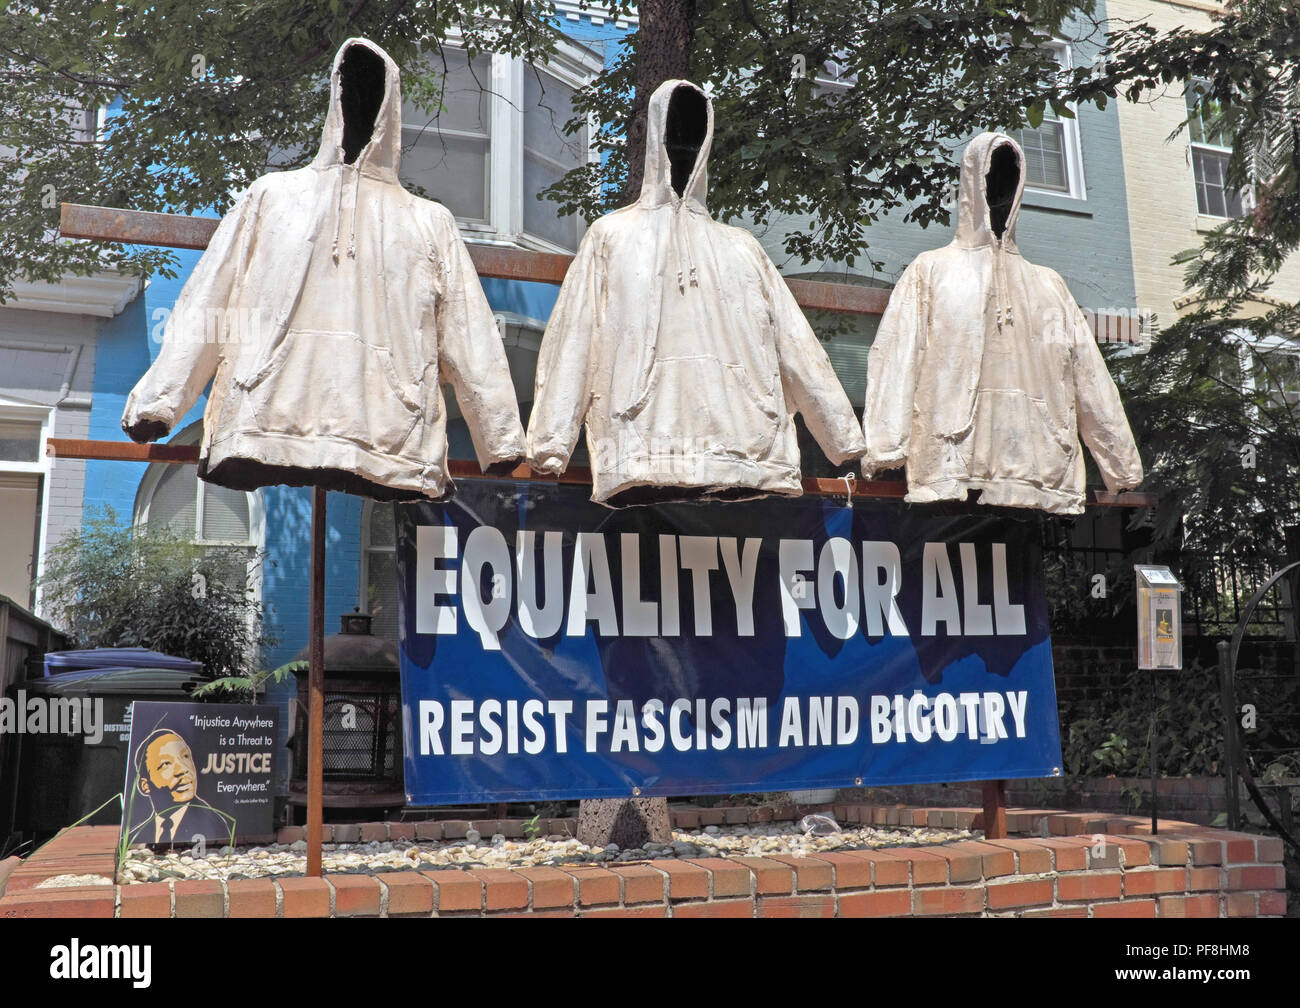 In the Foggy Bottom neighborhood of Washington D.C., a statement is made 'Equality for All Resist Fascism and Bigotry' with 3 white jacket dummies. - Stock Image